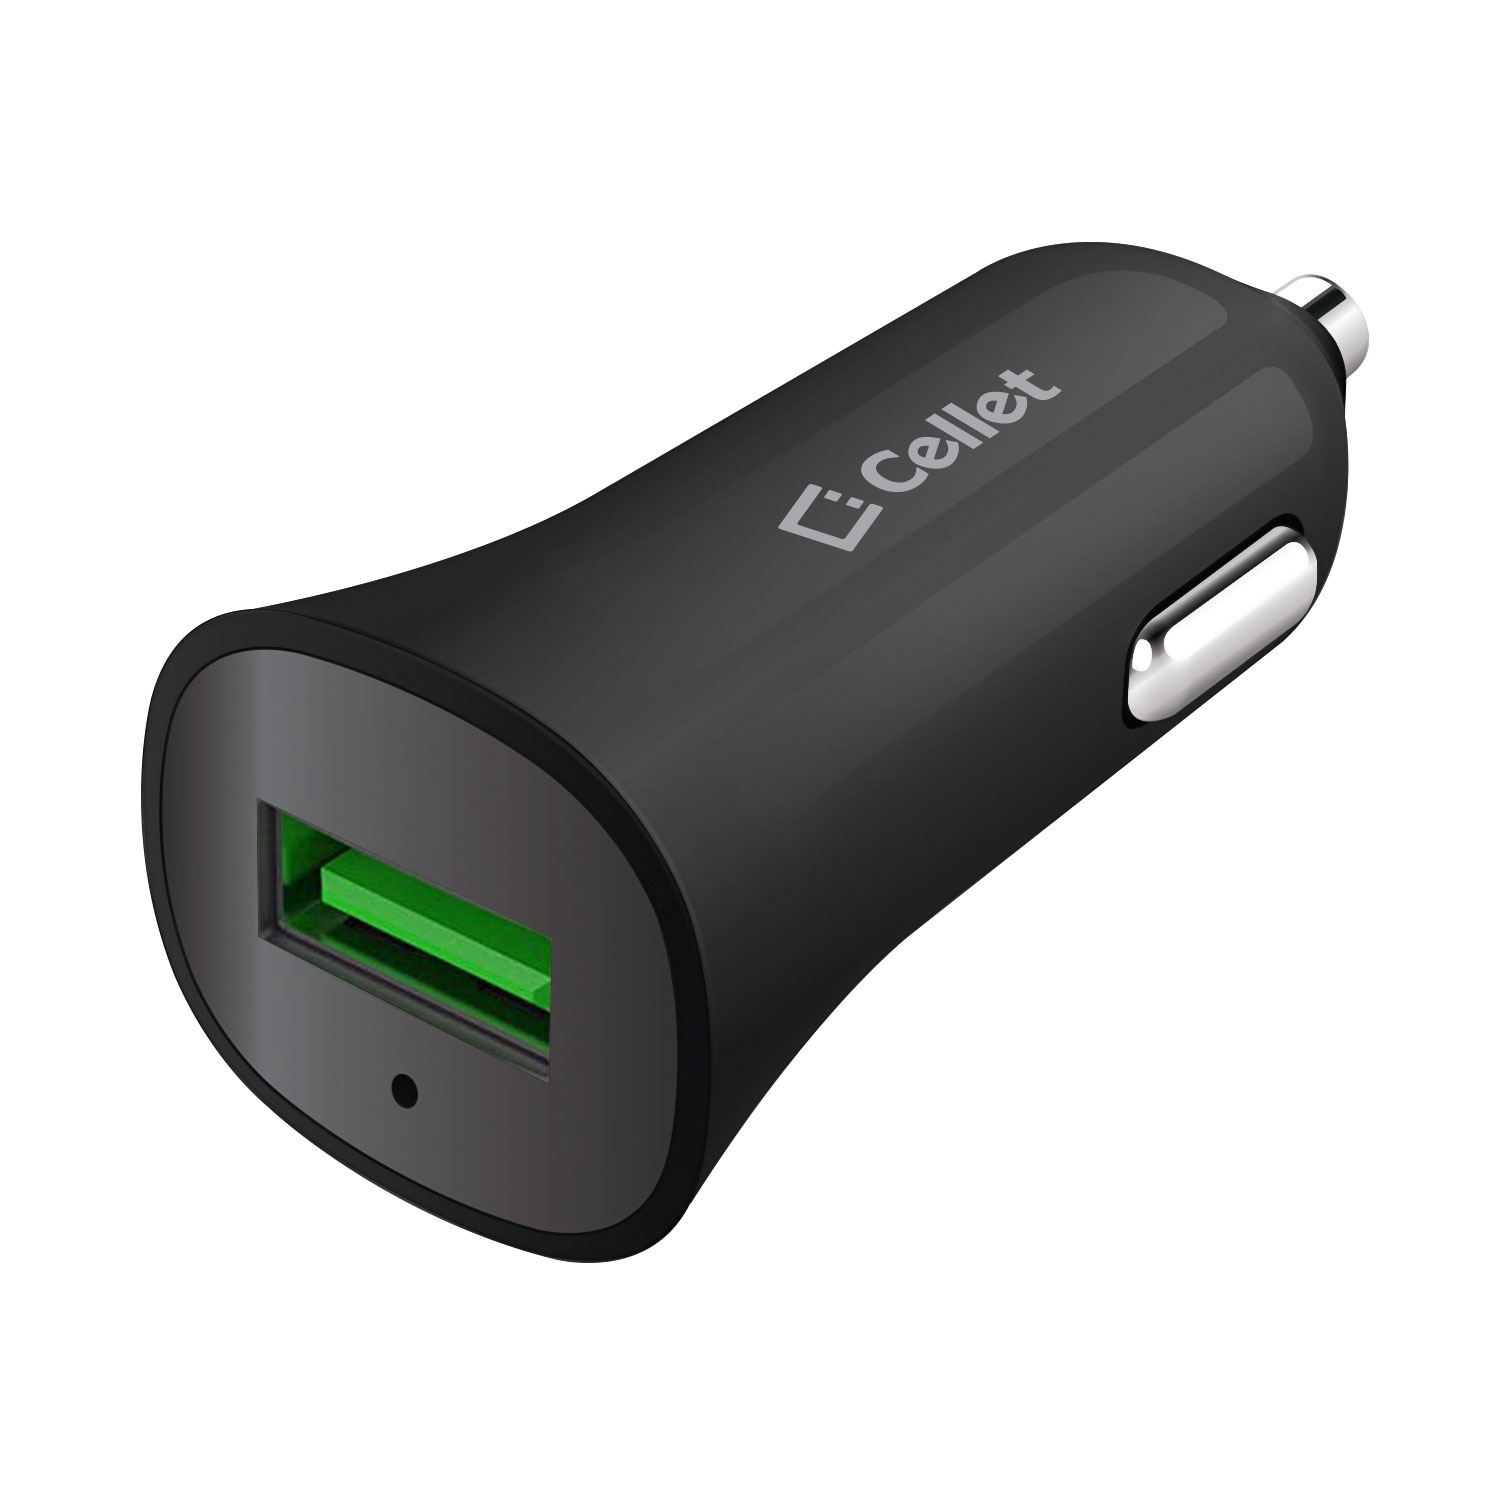 Alcatel Go Flip Car Charger Quick Charge 3.0 Black 3.3ft